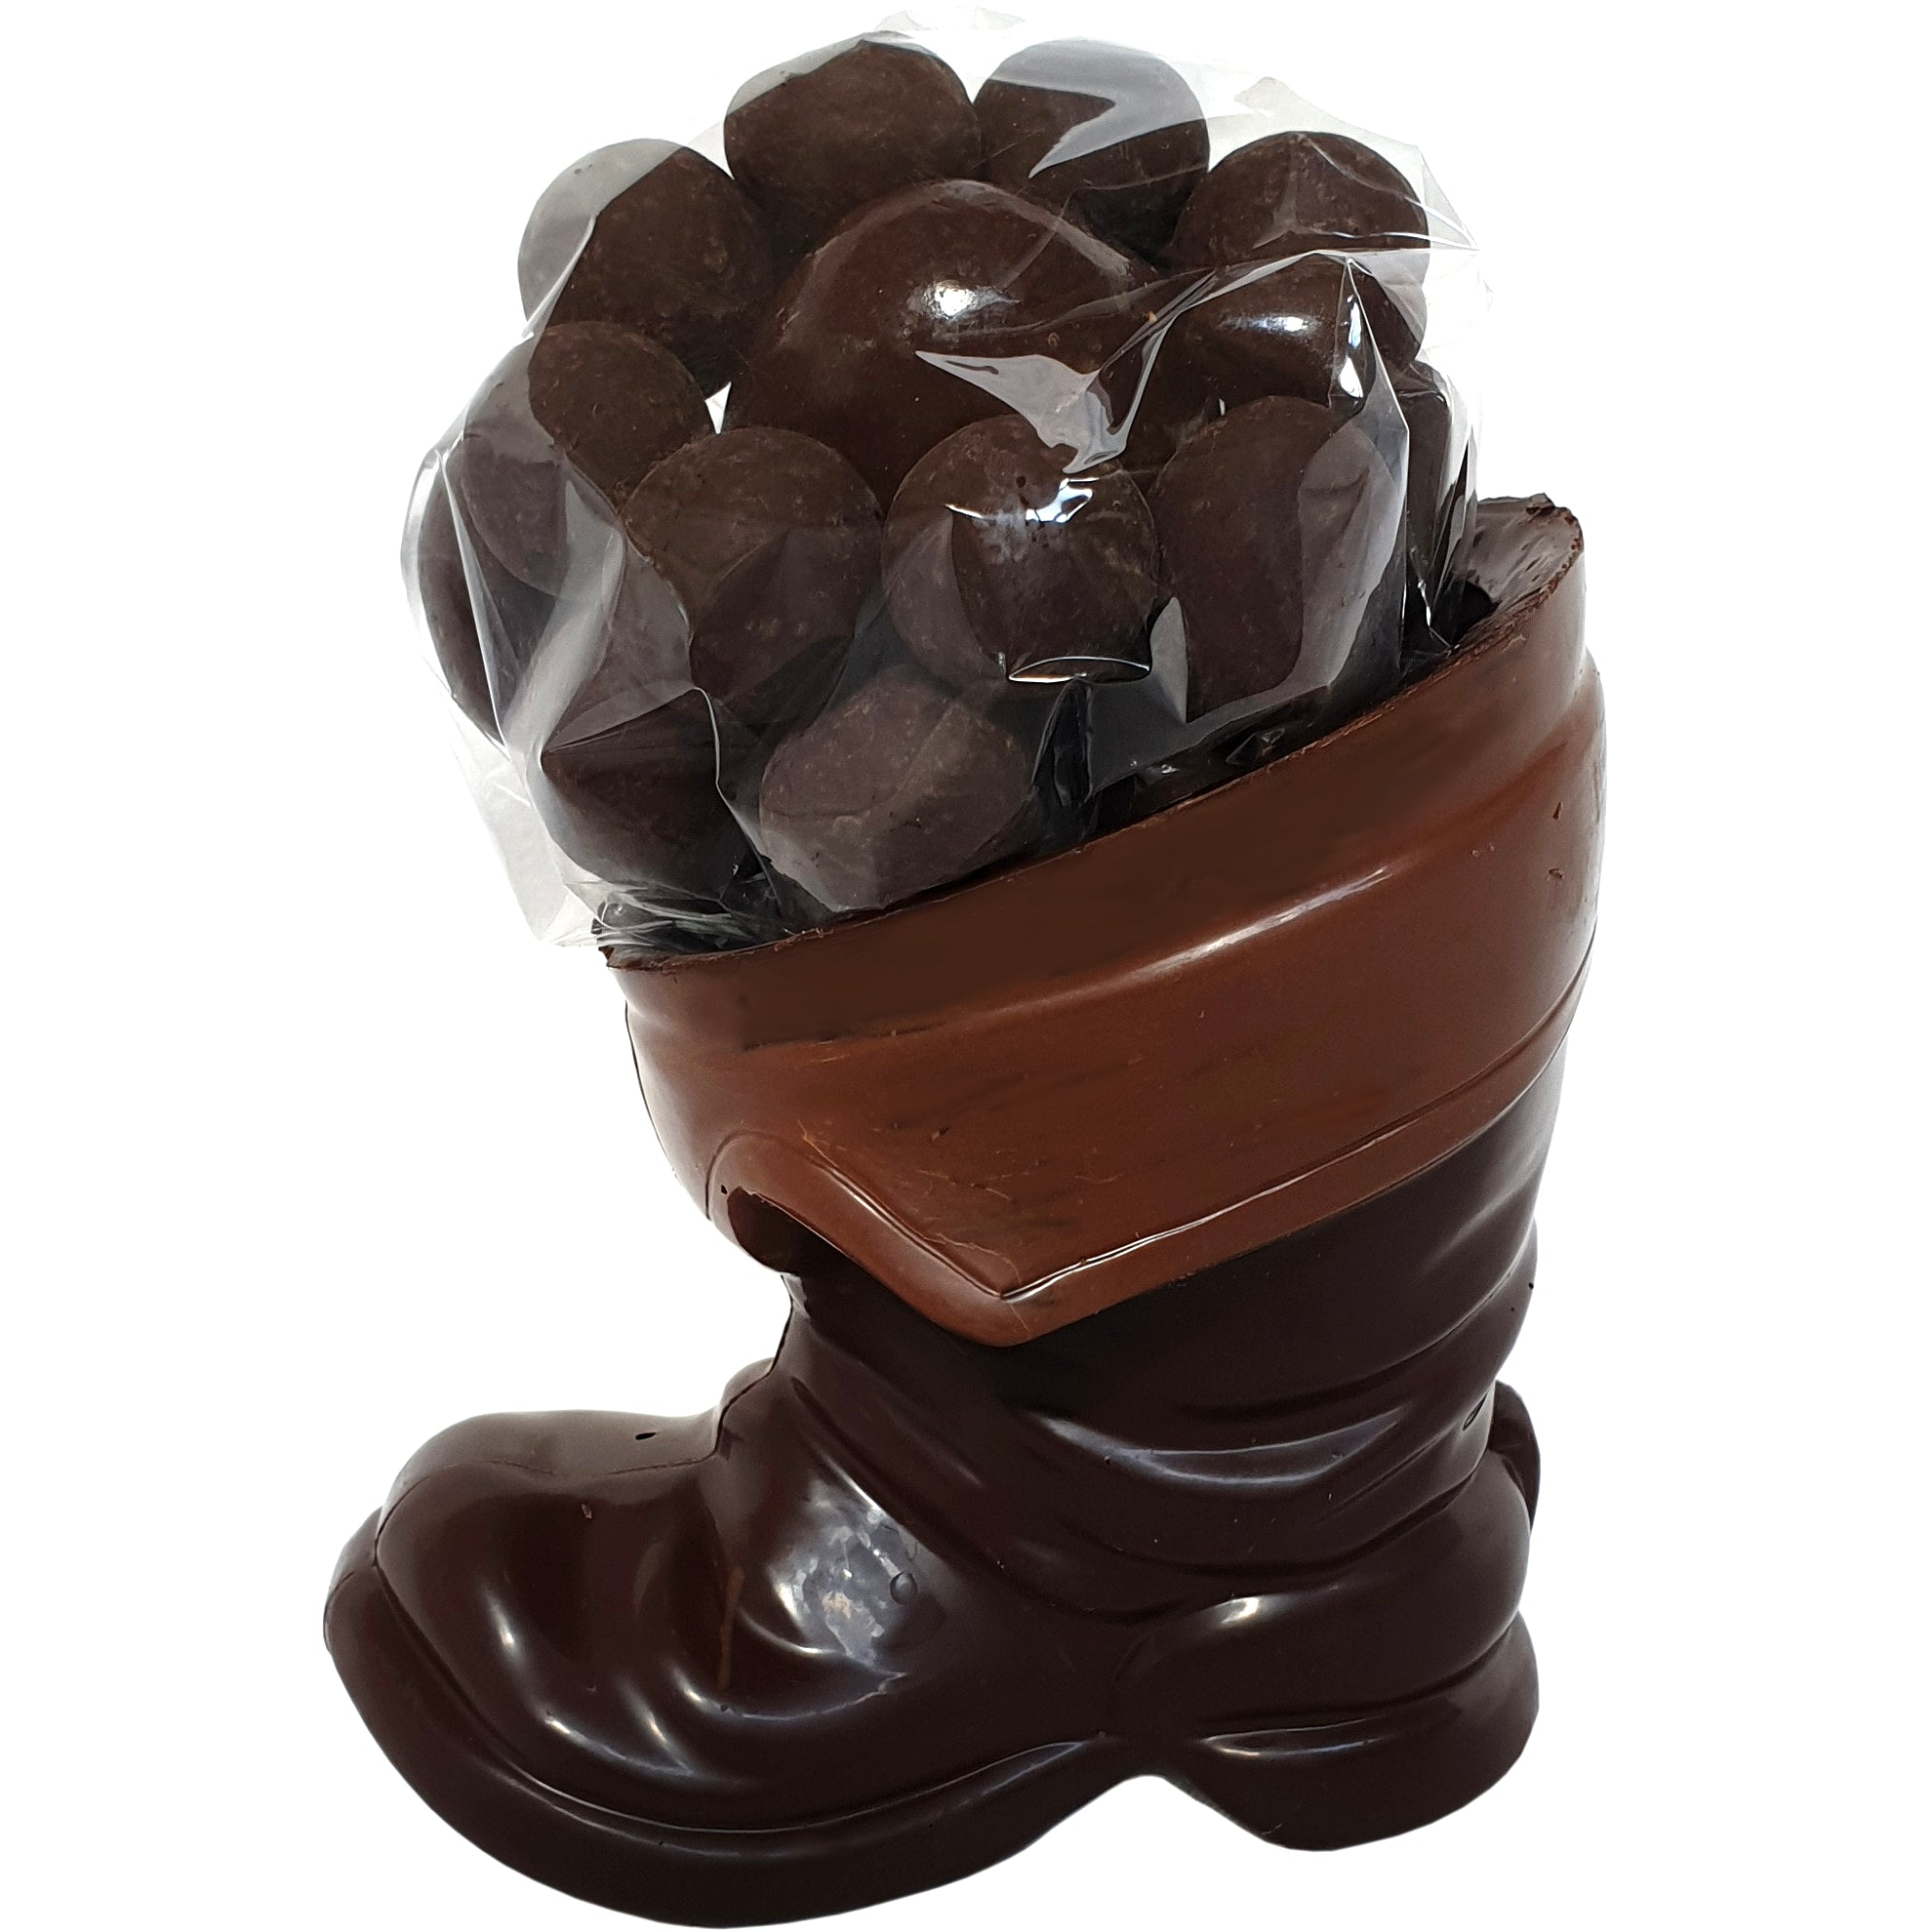 Santa's Boot 70% Dark chocolate filled with chocolate fruit and nuts 240g - Vegan